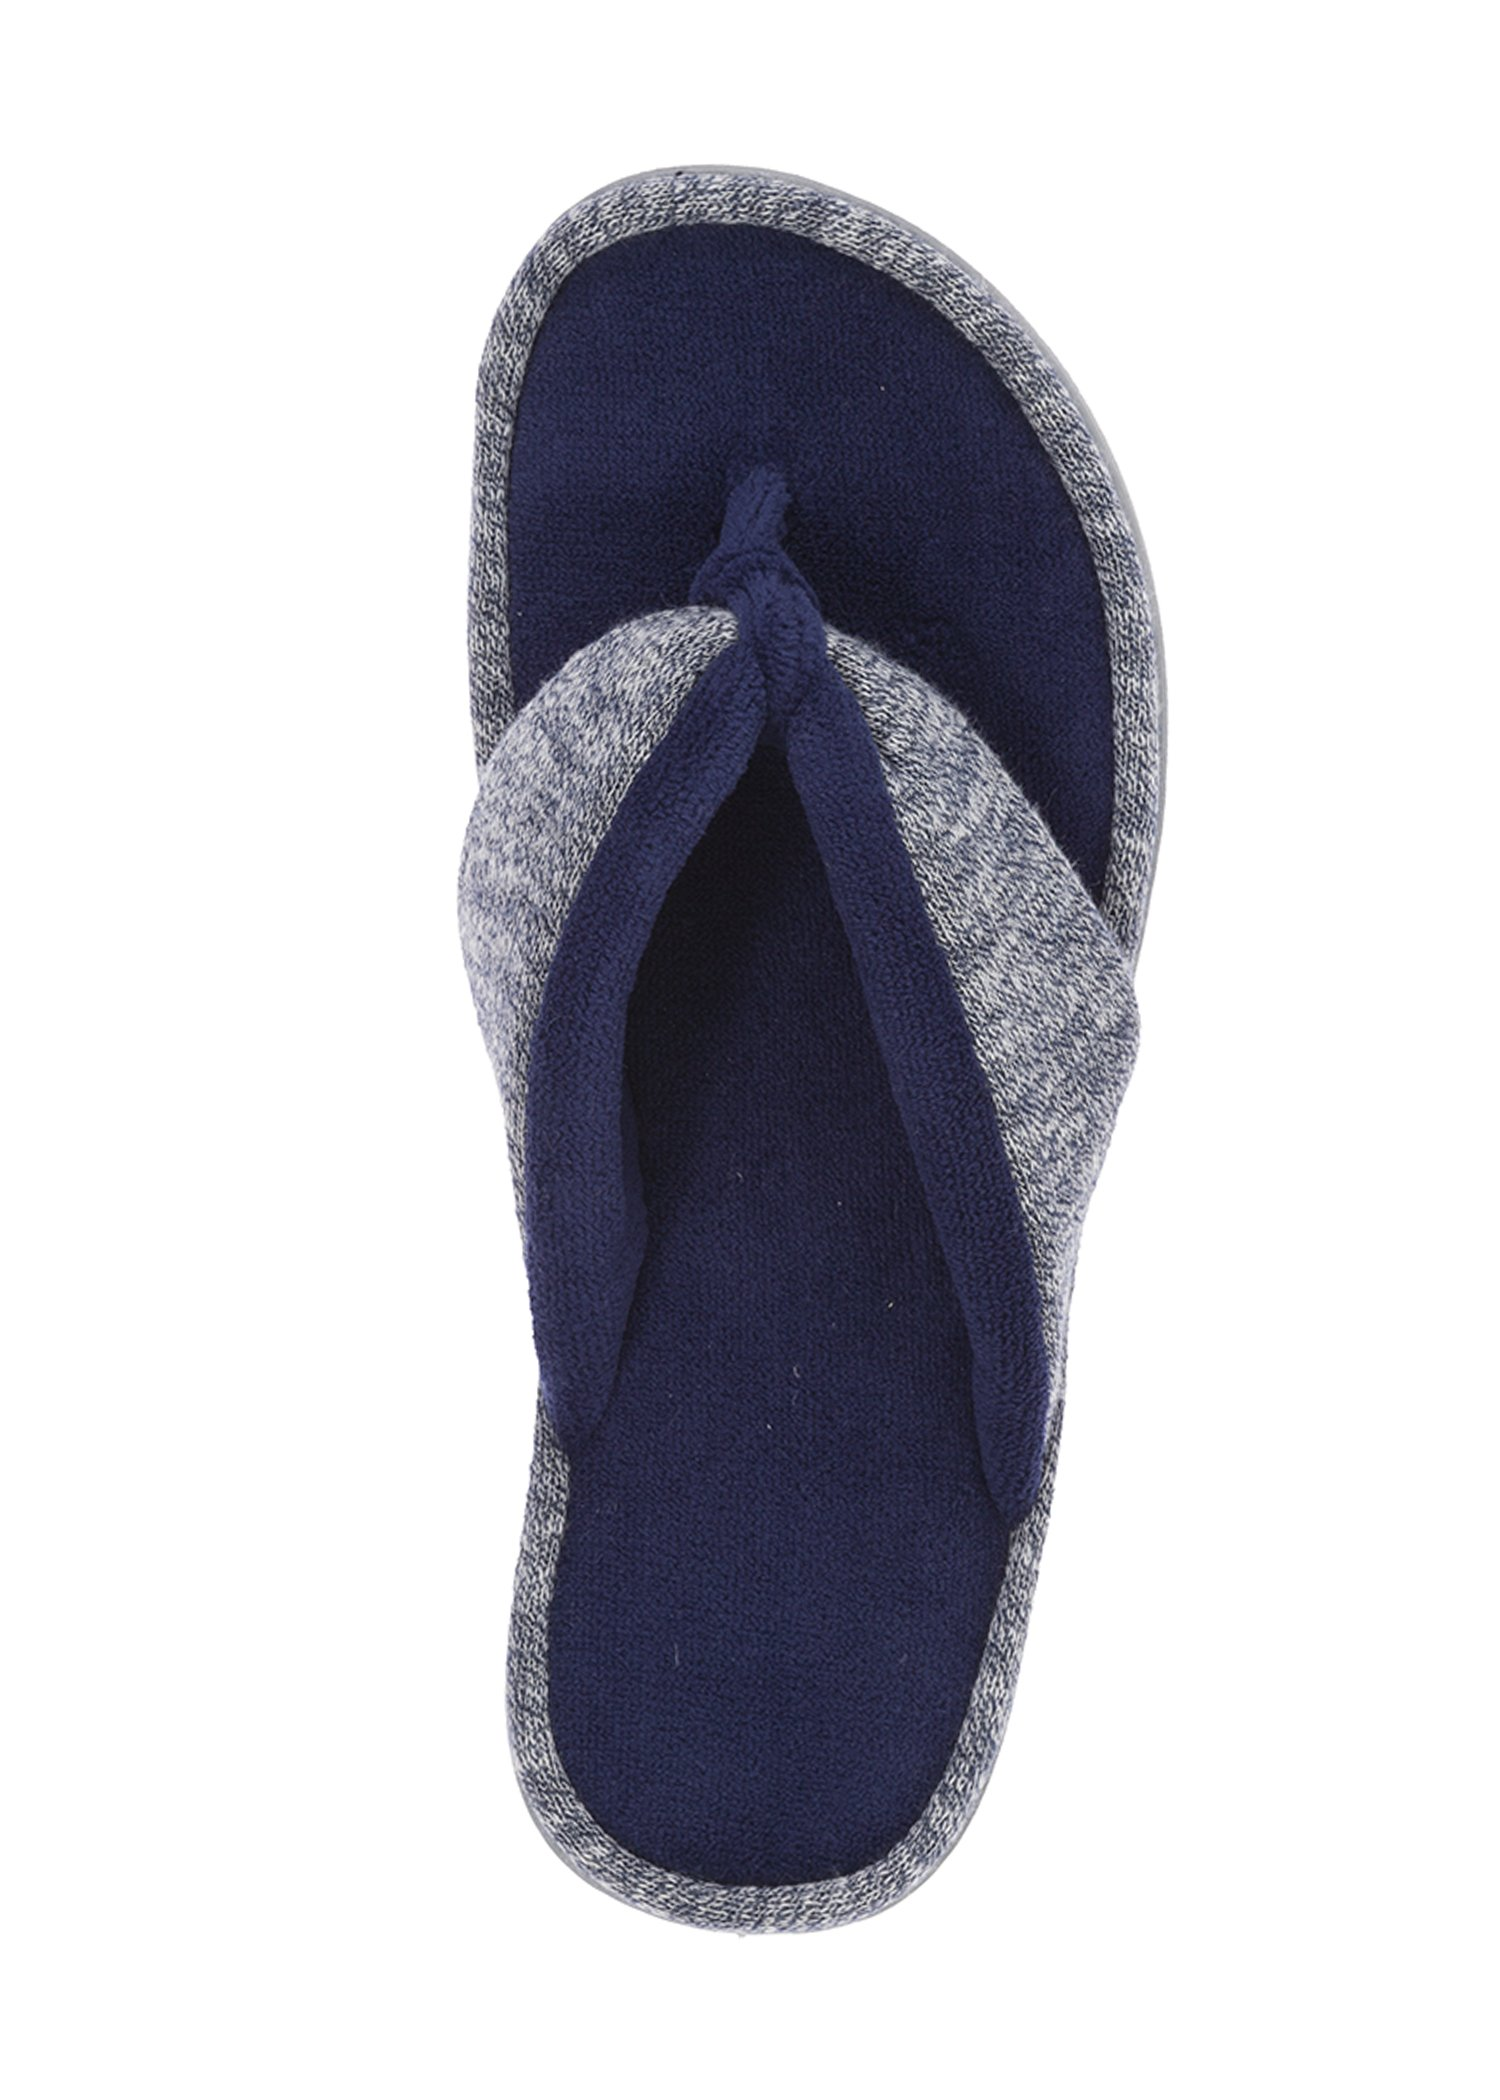 Dearfoams New Women's Thong Slippers (Style 40535) (Large, Peacoat)